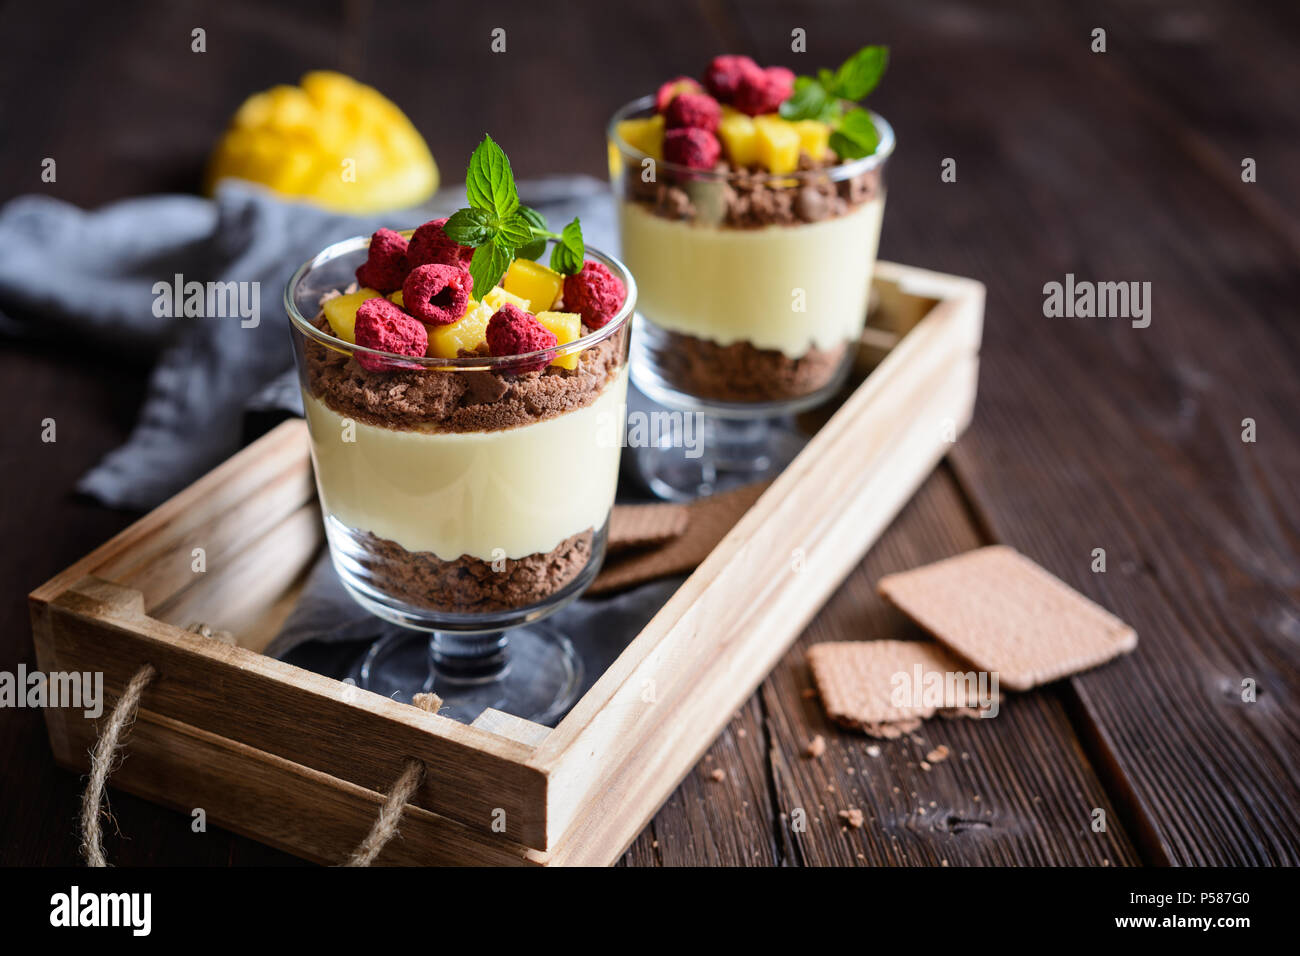 Layered mango dessert with cream cheese, crushed biscuits and freeze dried raspberries served in glass jars - Stock Image